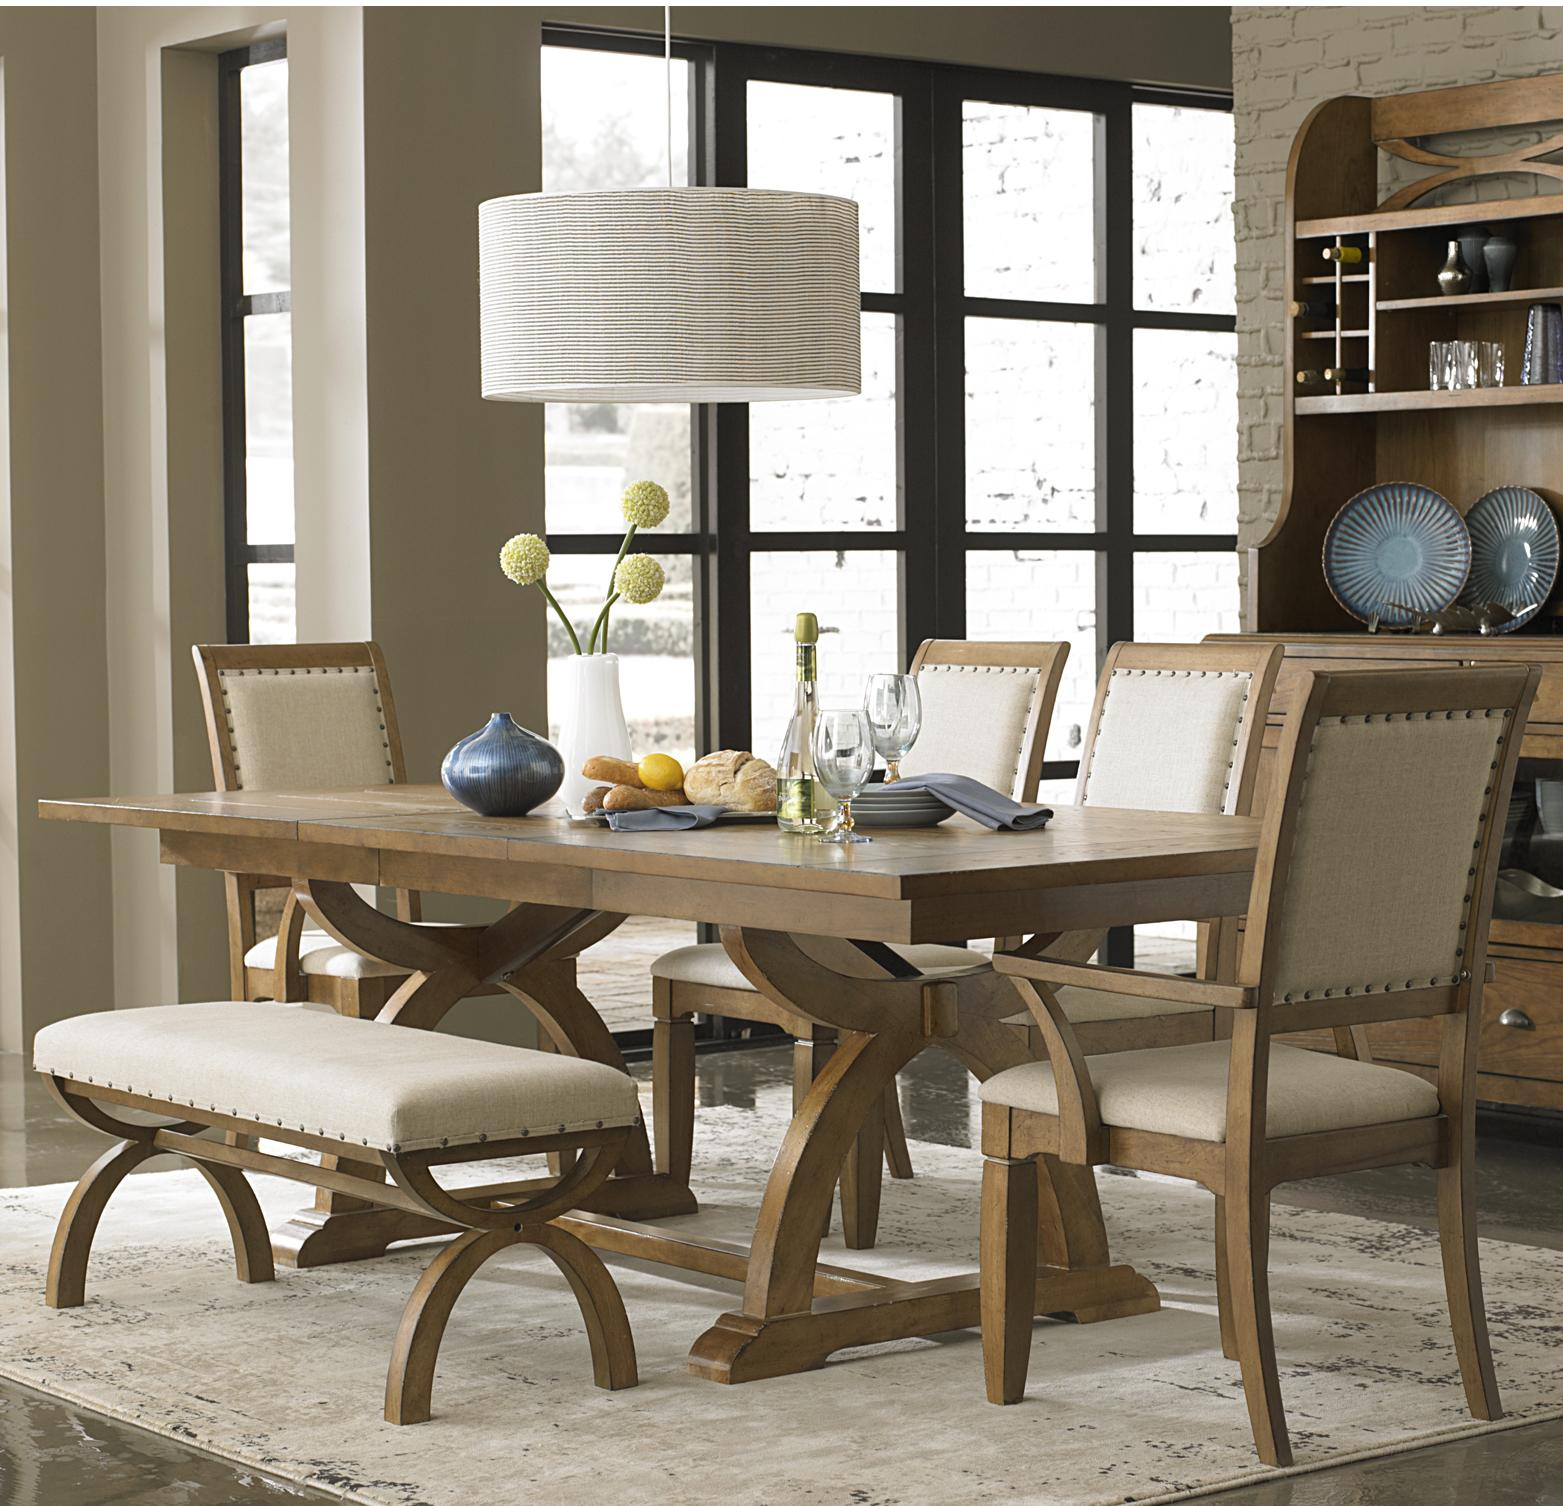 6 piece trestle table set with 4 upholstered chairs u0026 dining bench